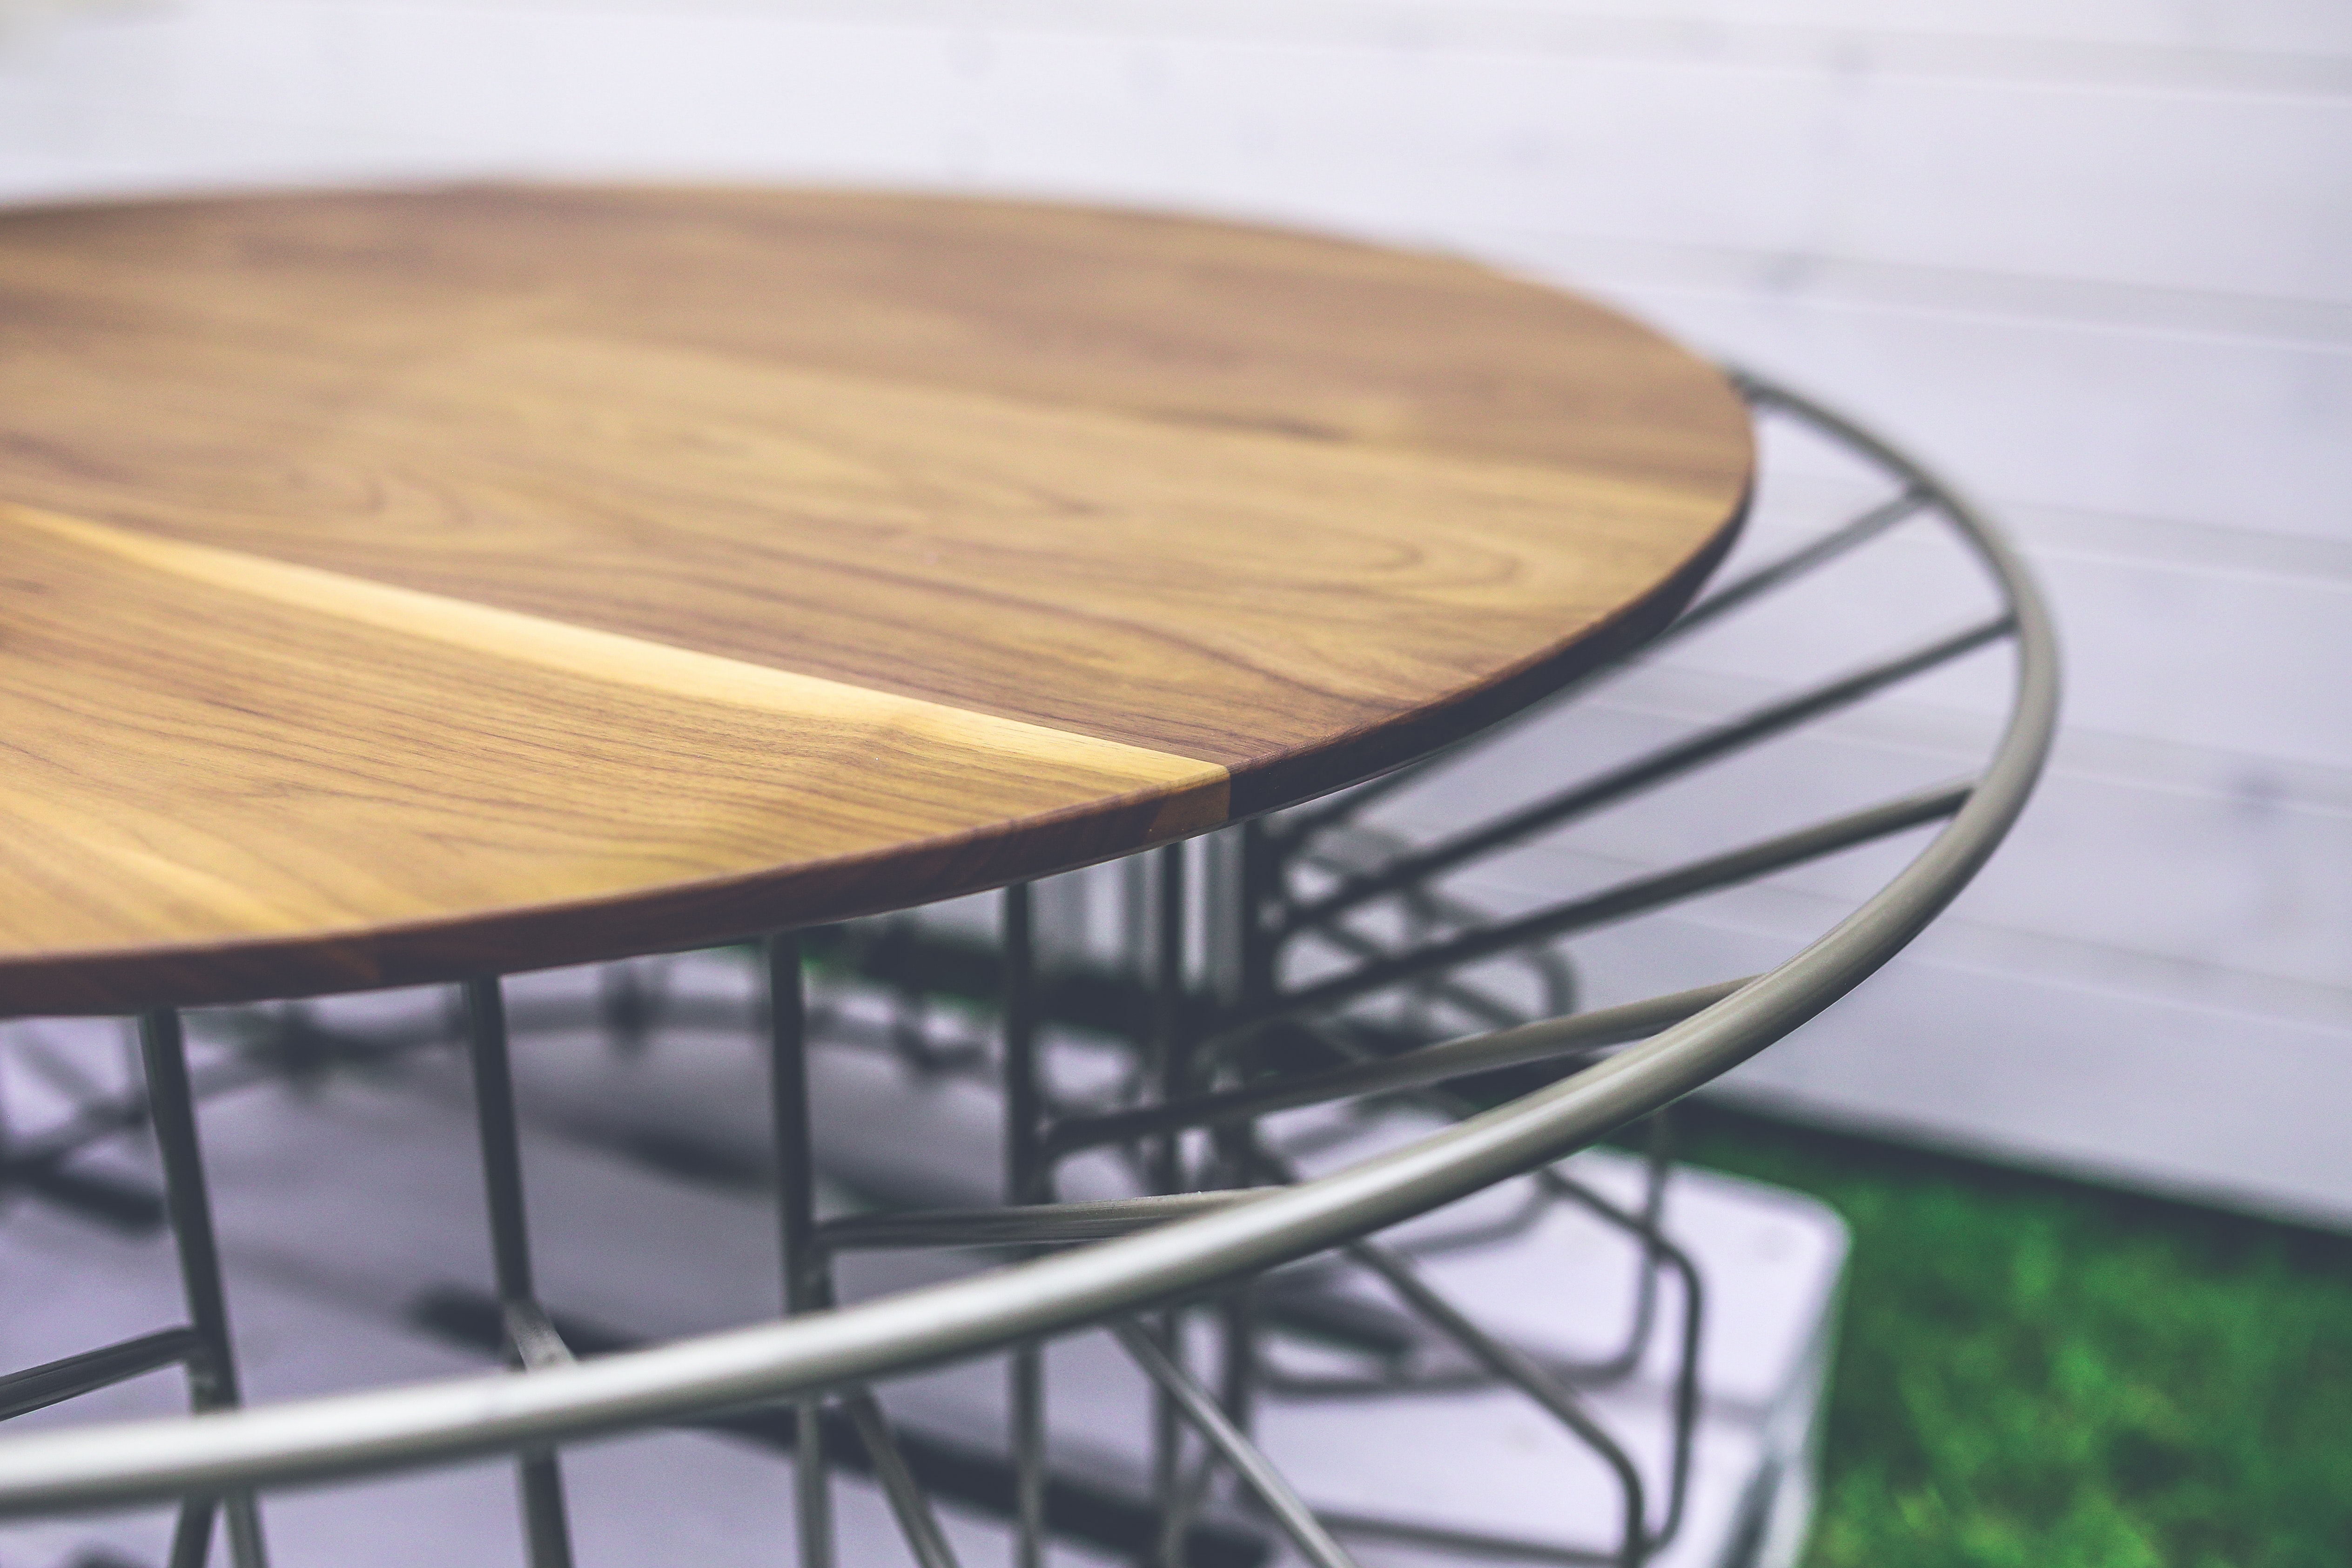 Wood and metal table photo